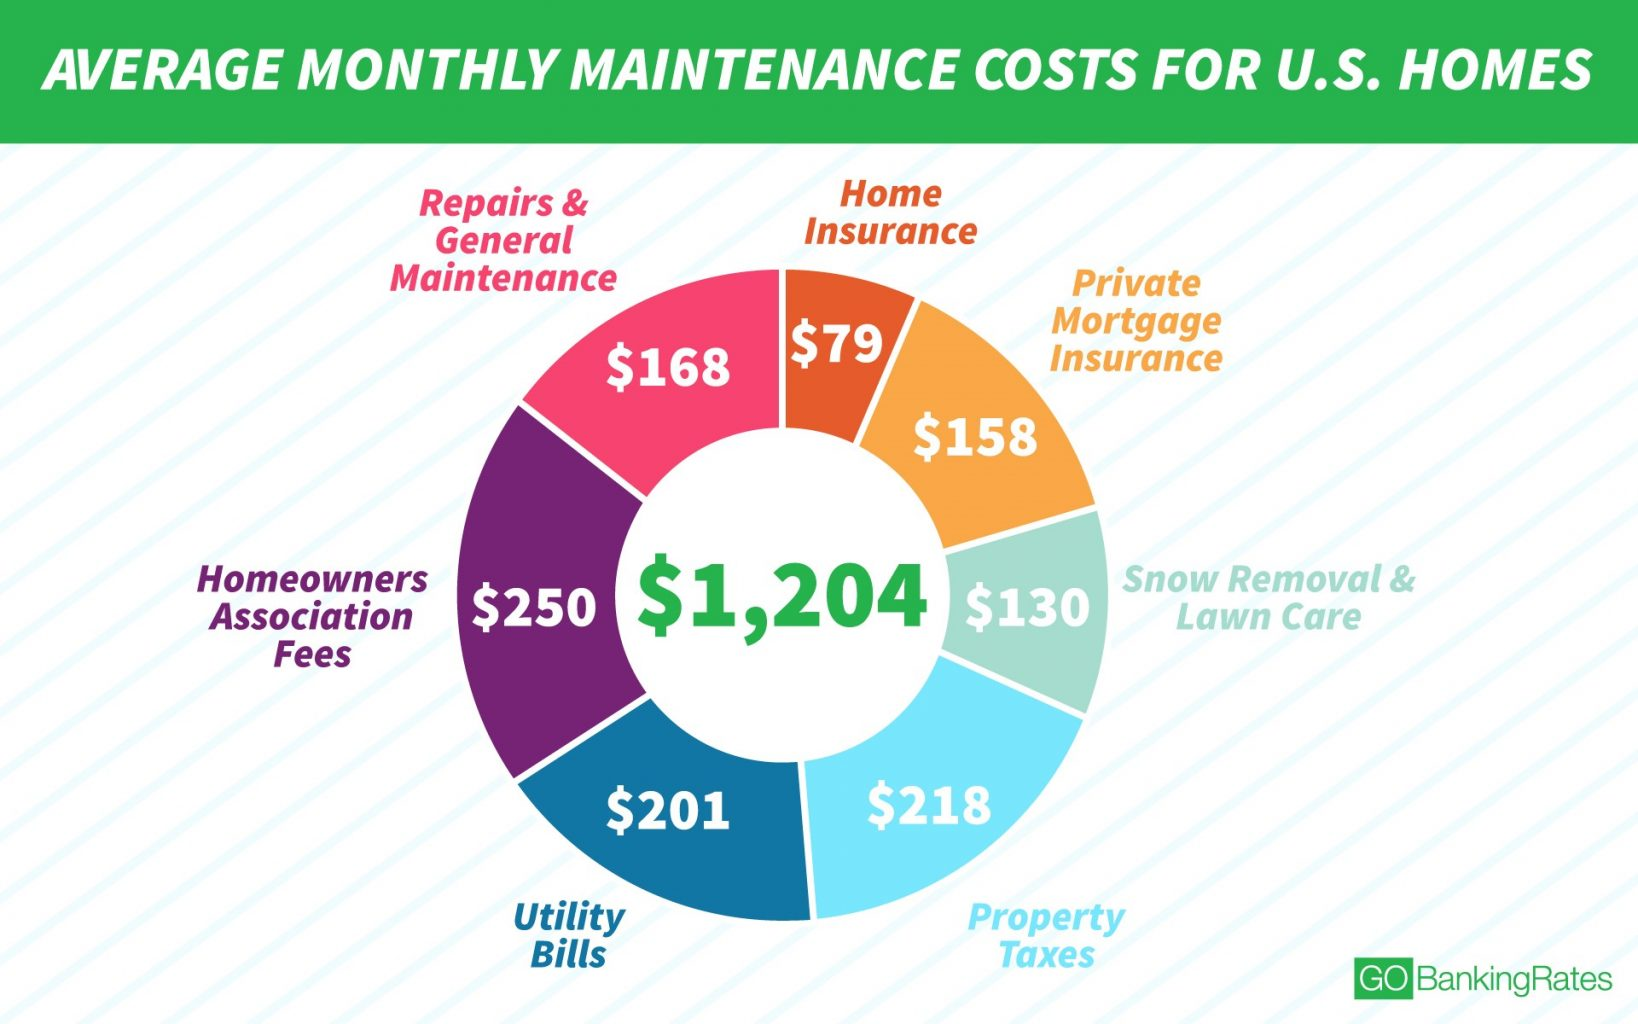 What Is The Annual Cost Of Maintaining A Home?